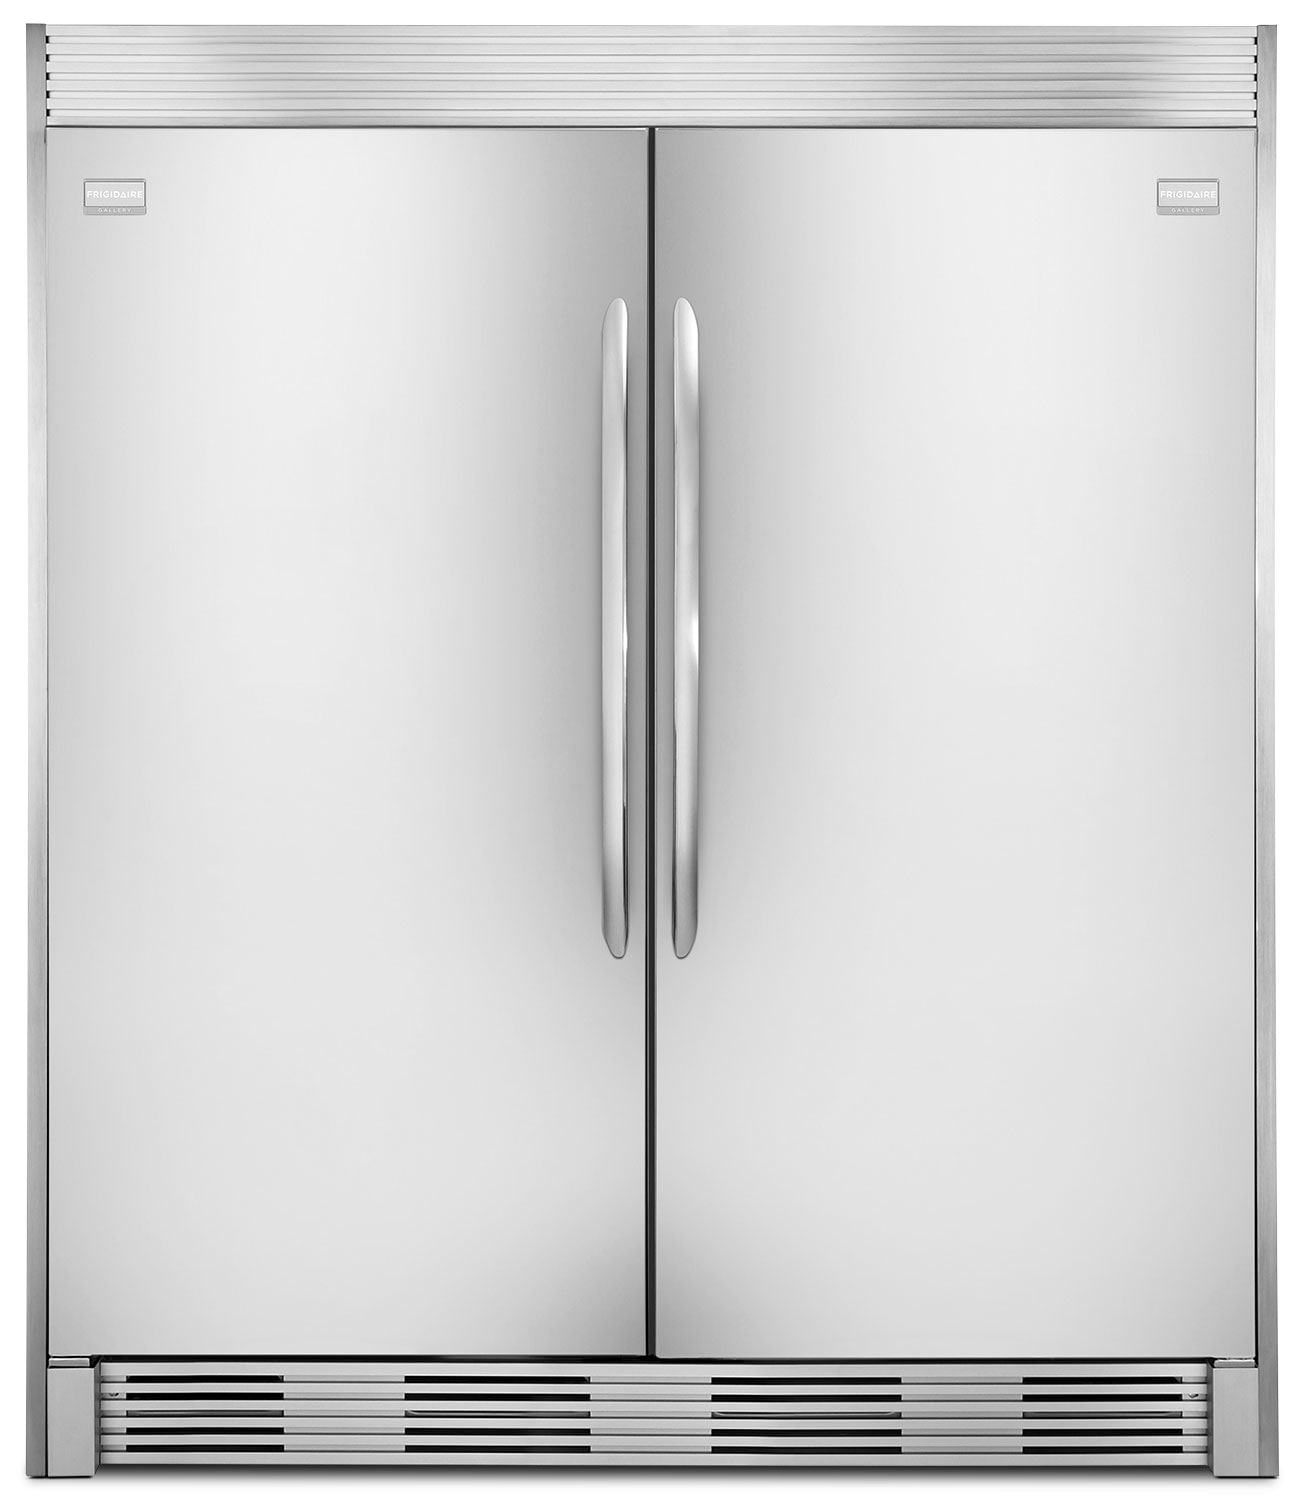 Frigidaire Gallery 18.6 Cu. Ft. Refrigerator, 18.6 Cu. Ft. Freezer and Trim Kit Package